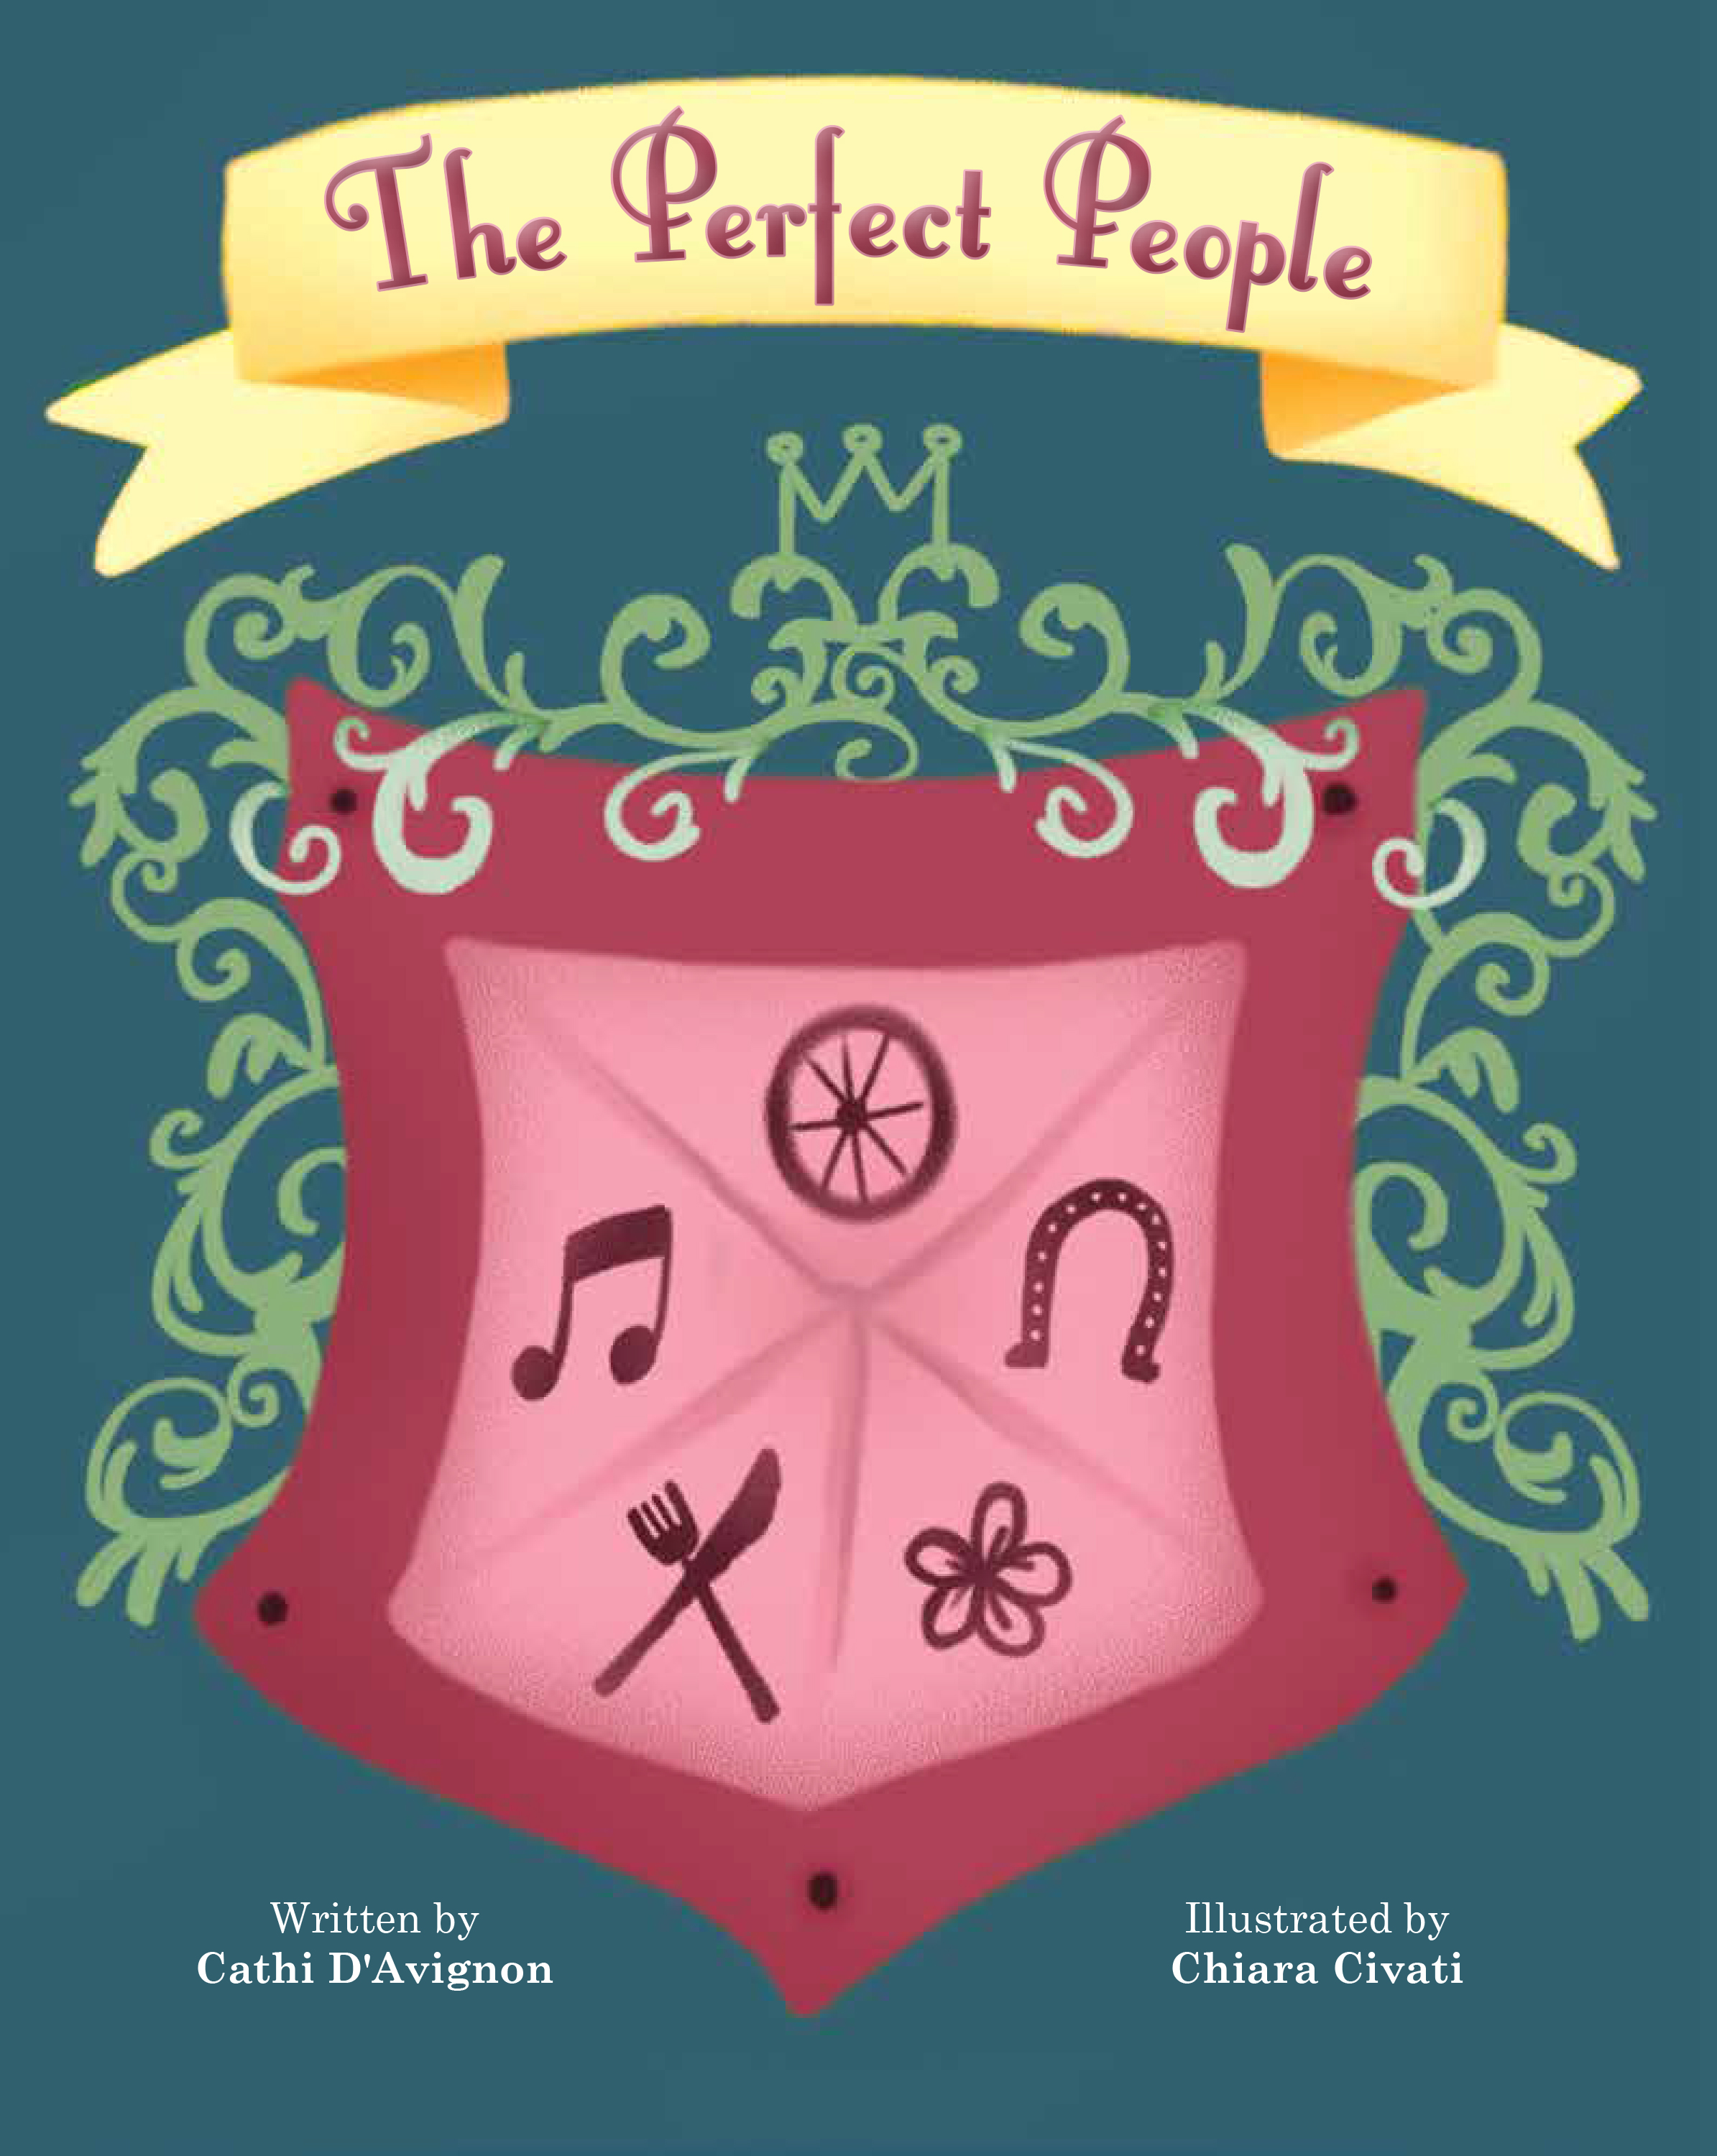 theperfectpeople_amazon